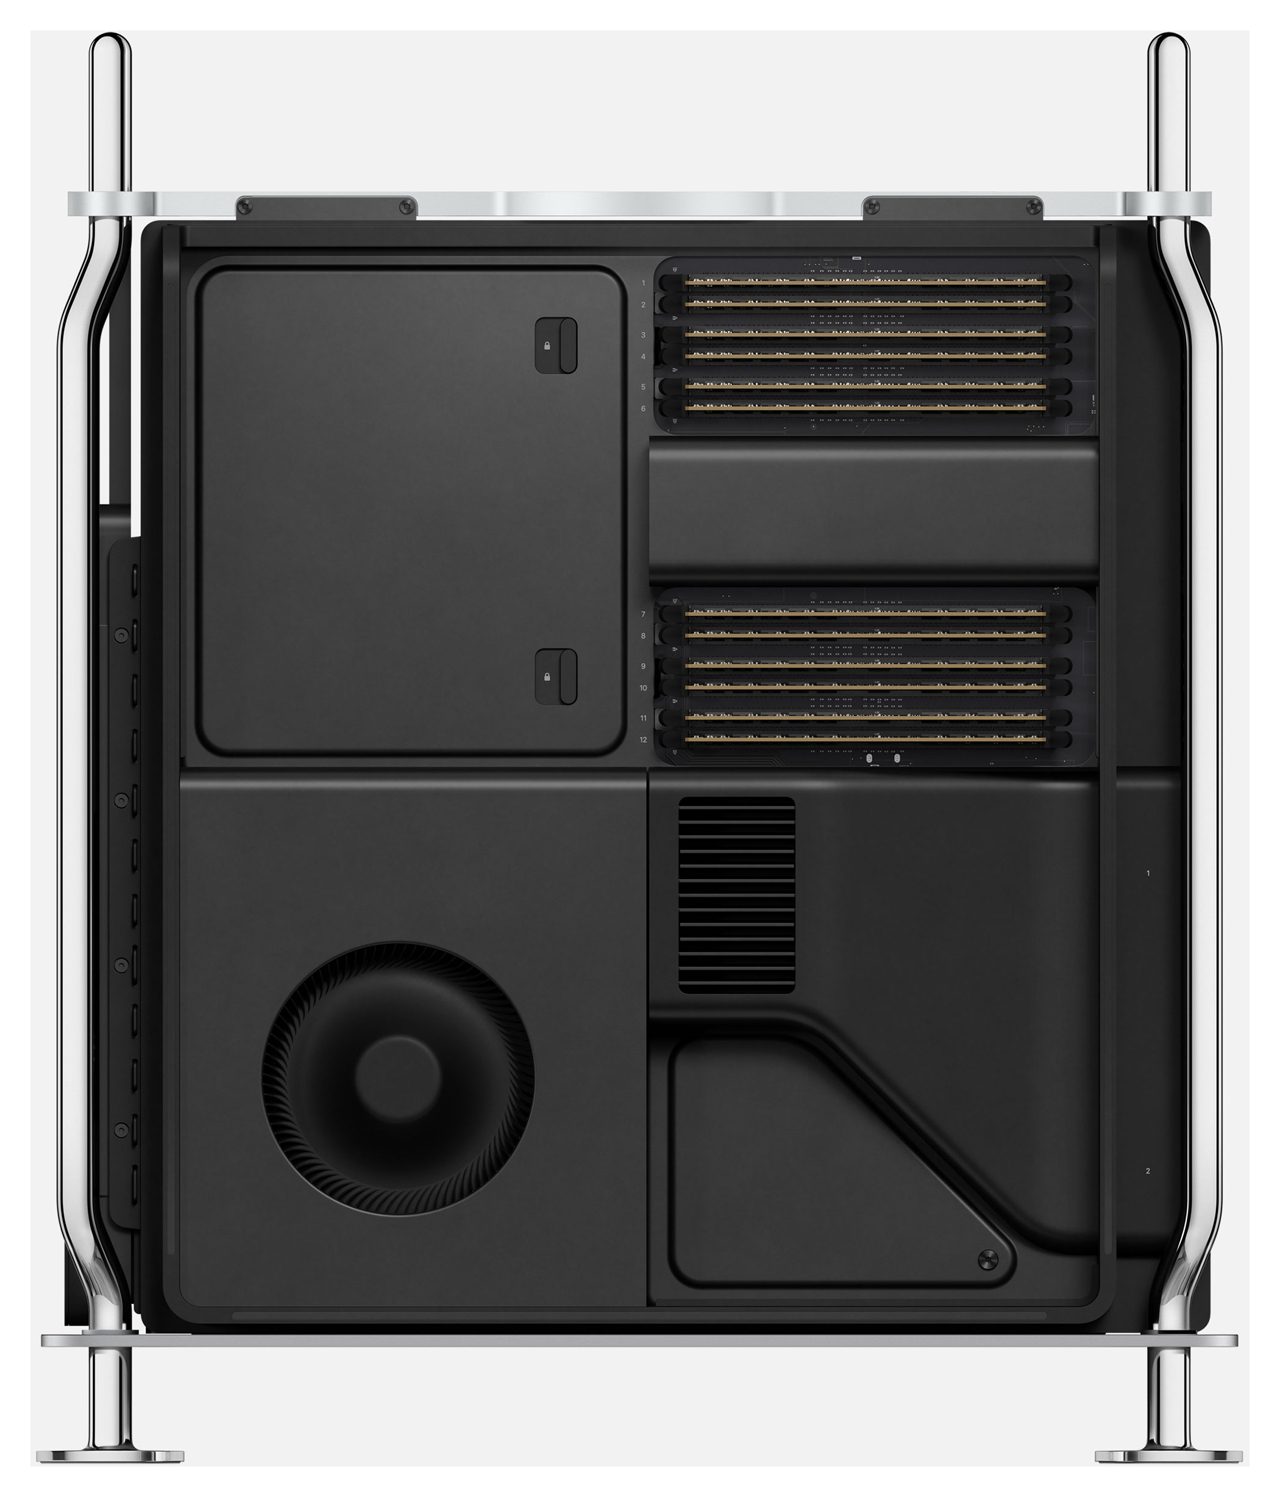 2019 Mac Pro with DIMM slots exposed.